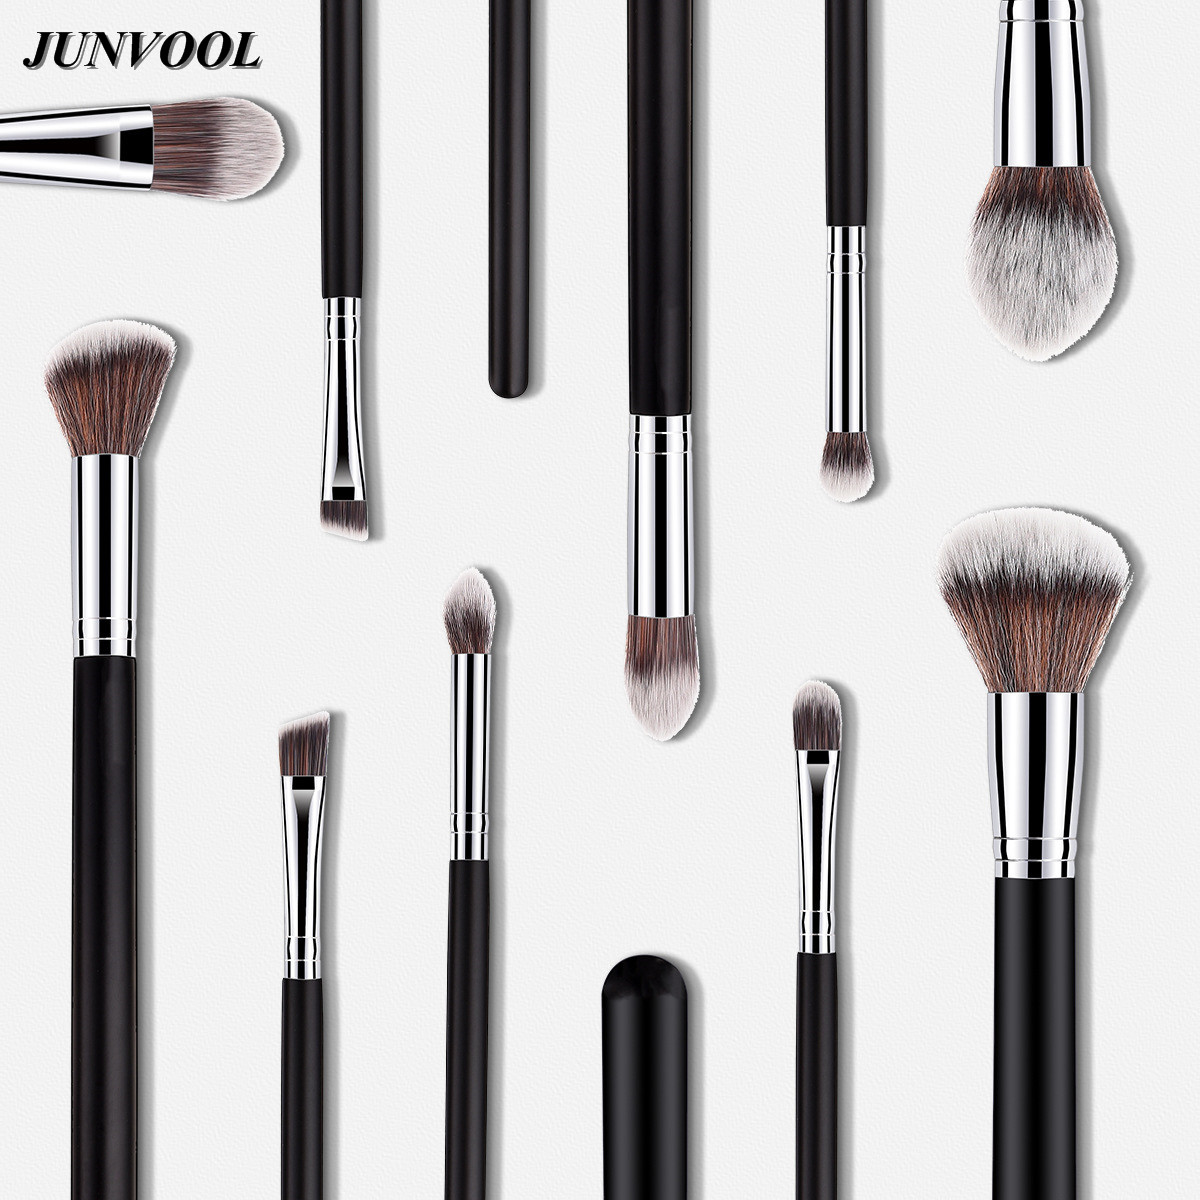 1Pcs Make Up Tools Kit Silver Black Soft Concealer Flame Makeup Brush Synthetic Hair Cosmetic Blush Foundation Eyeshadow Brushes